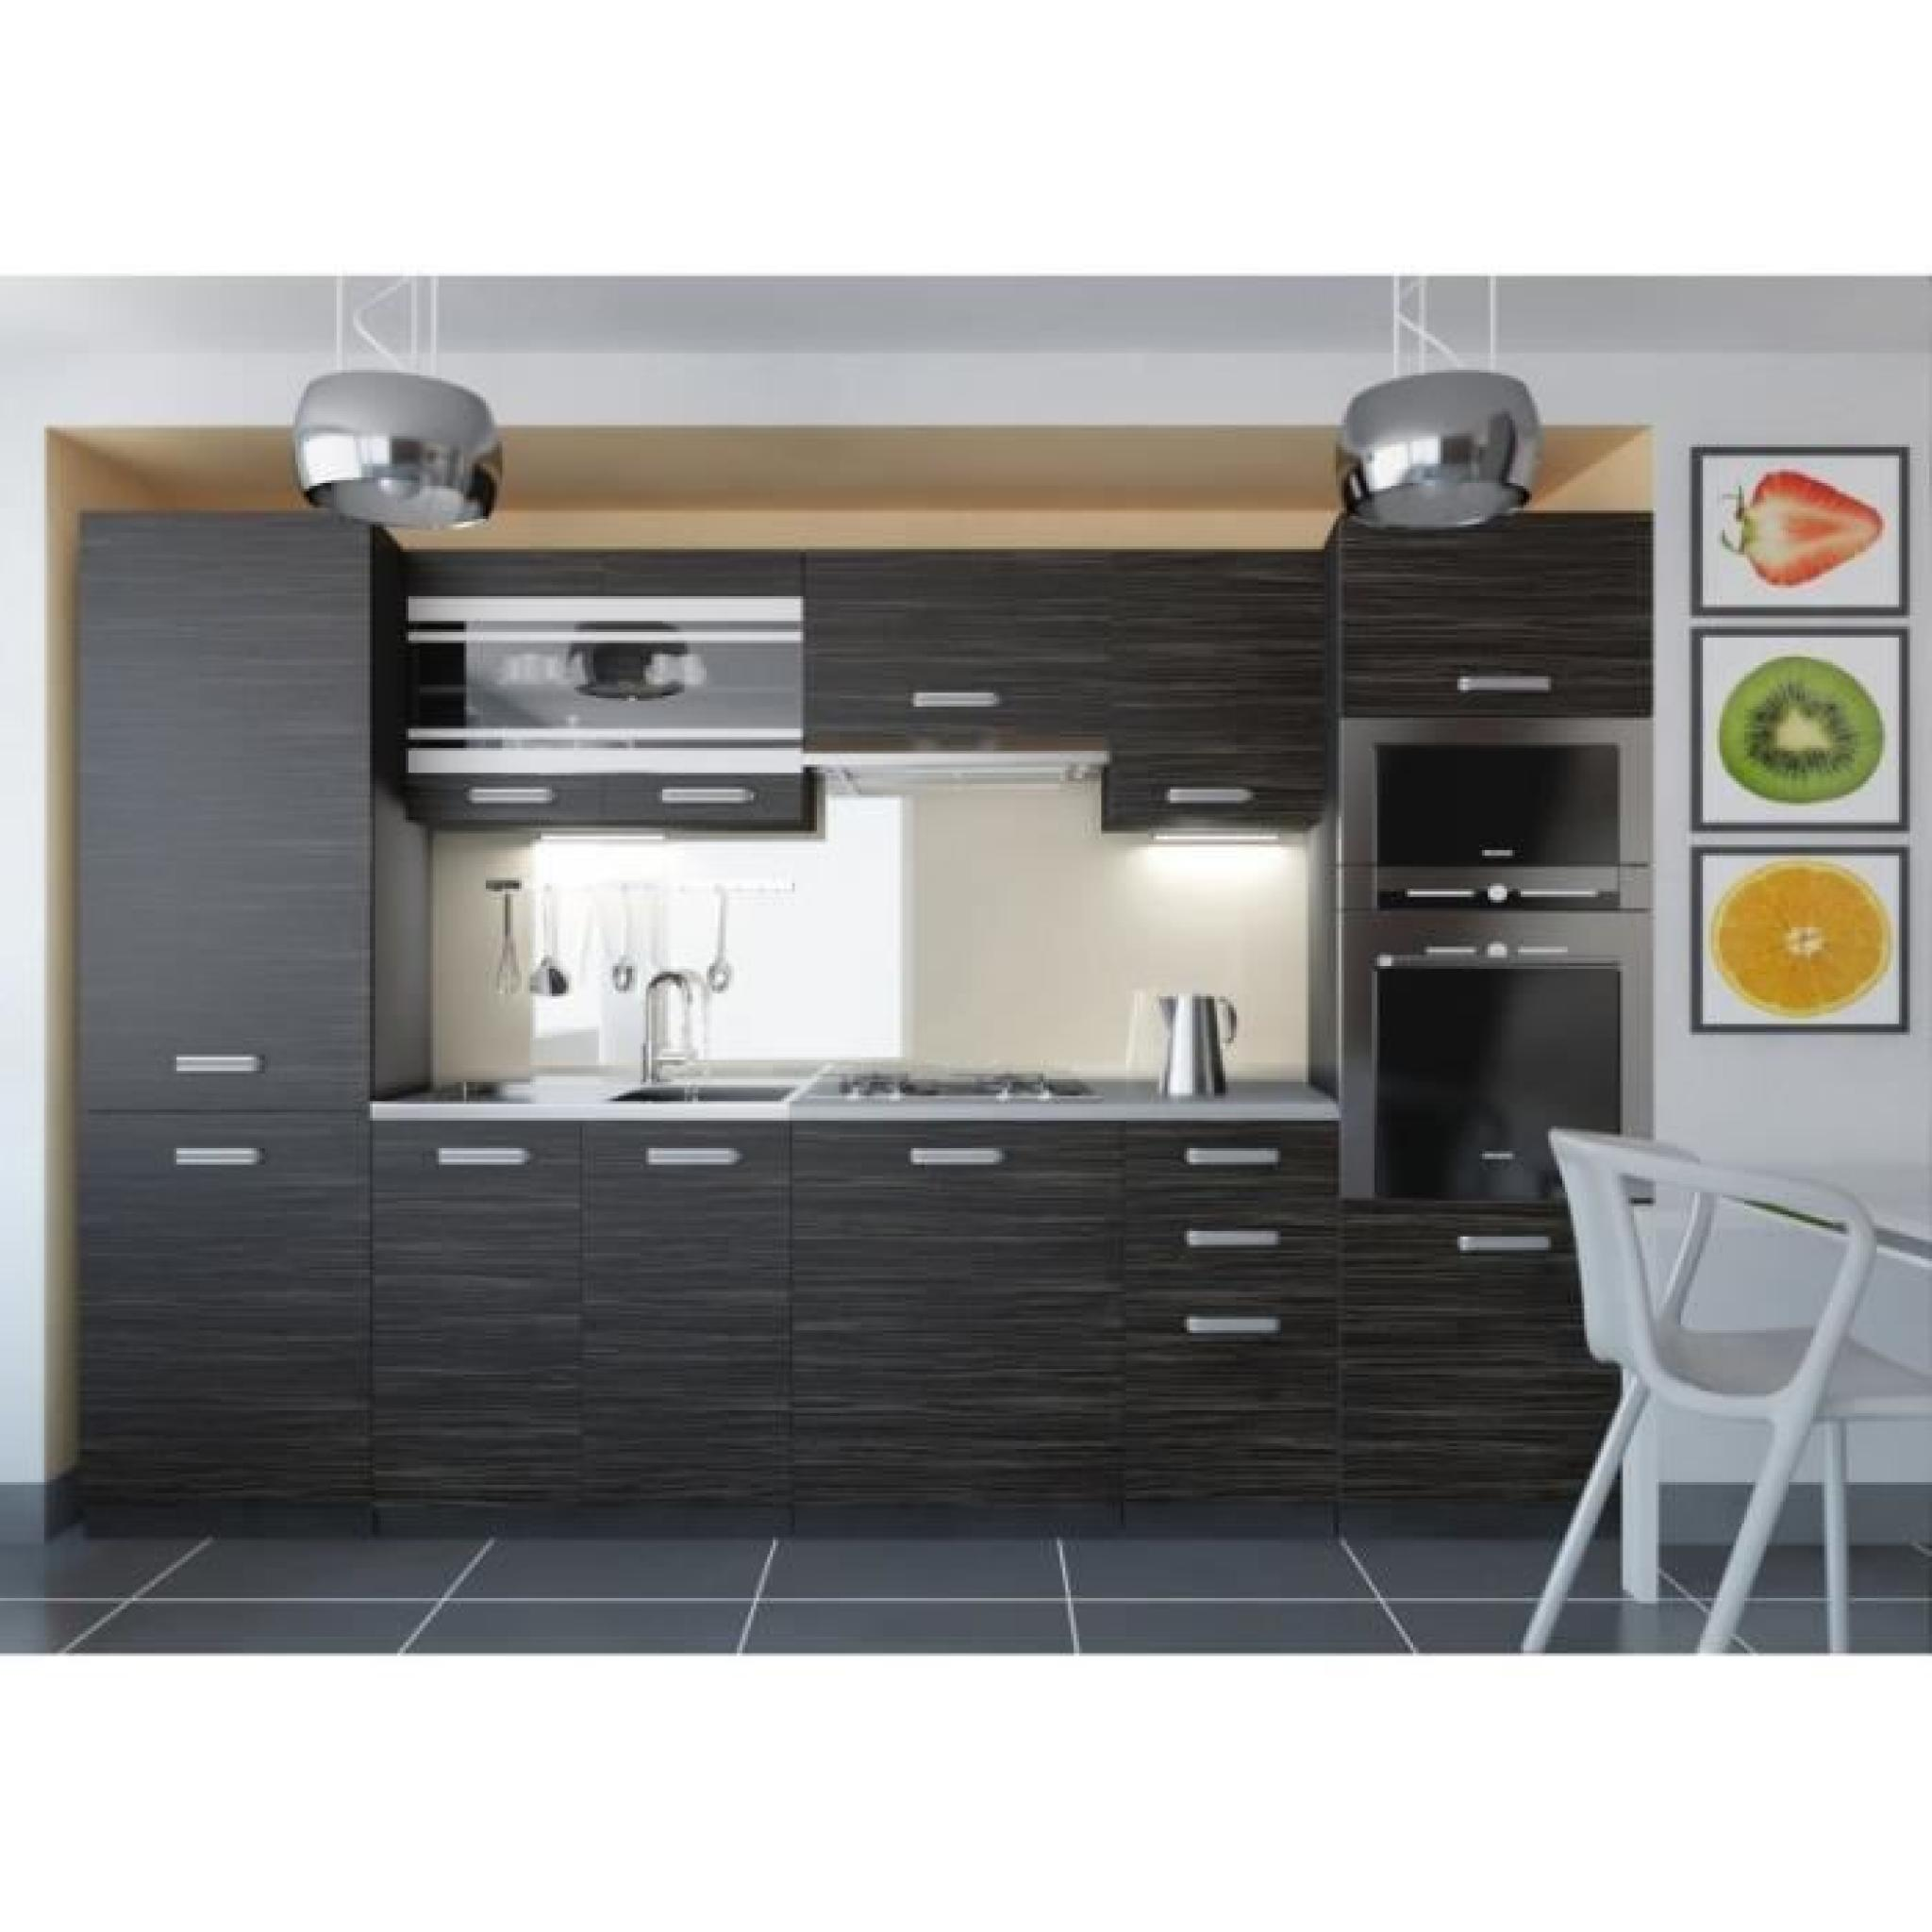 justhome torino 5 led cuisine quip e compl te 300 cm. Black Bedroom Furniture Sets. Home Design Ideas